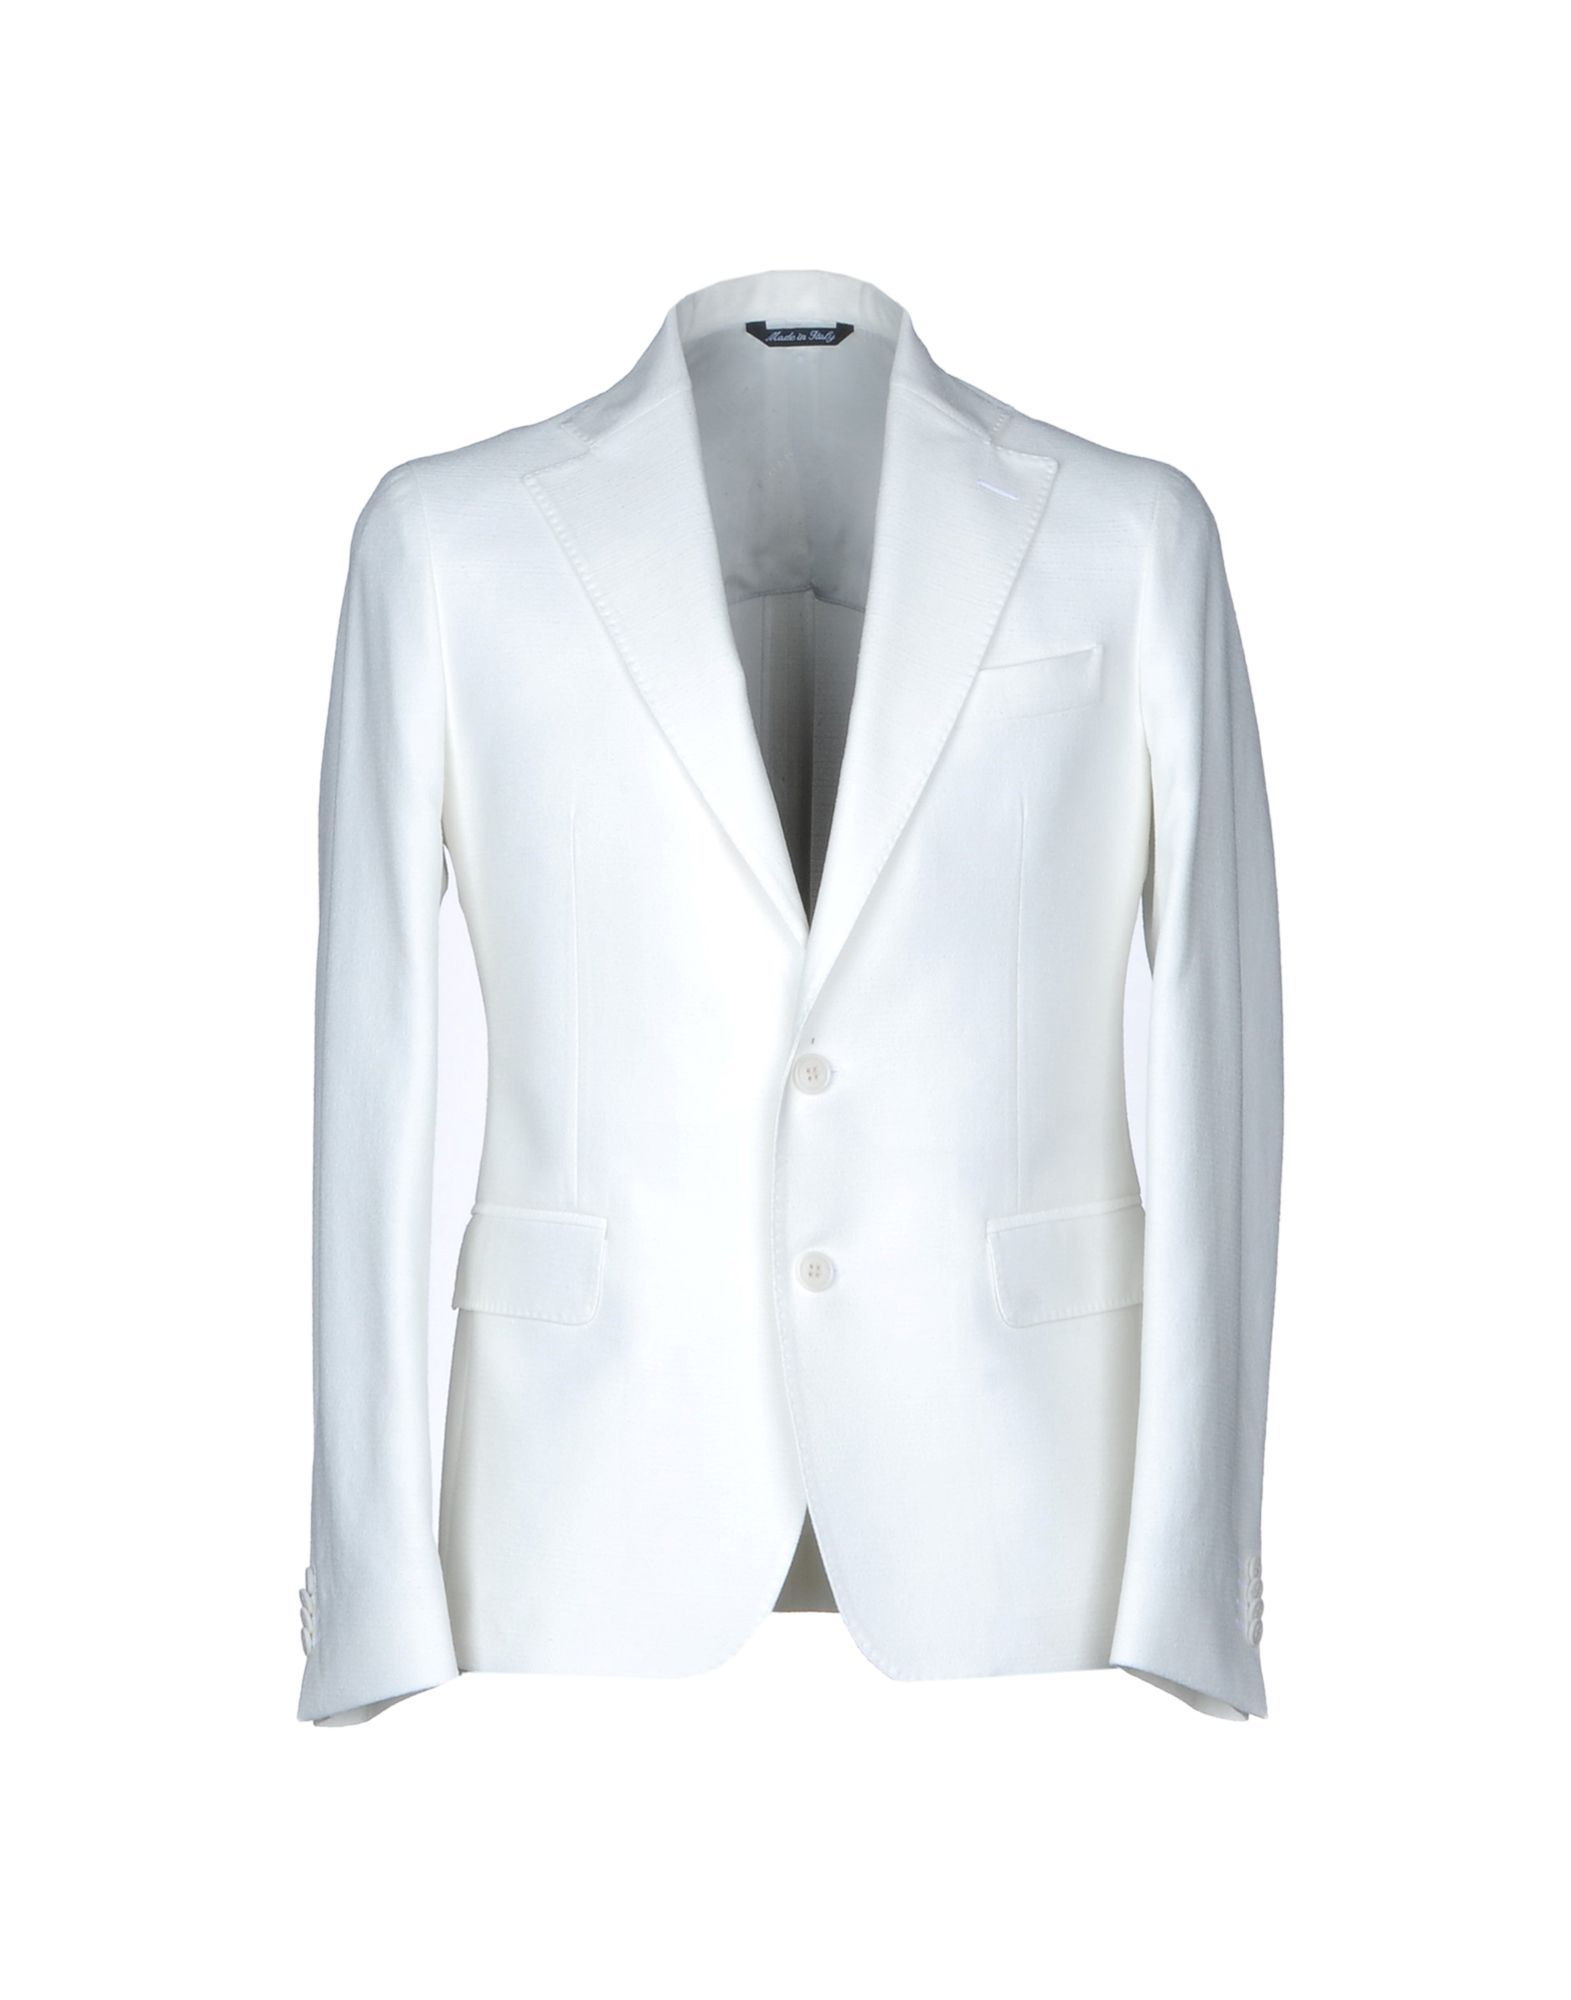 SUITS AND JACKETS Brian Dales Ivory Man Cotton